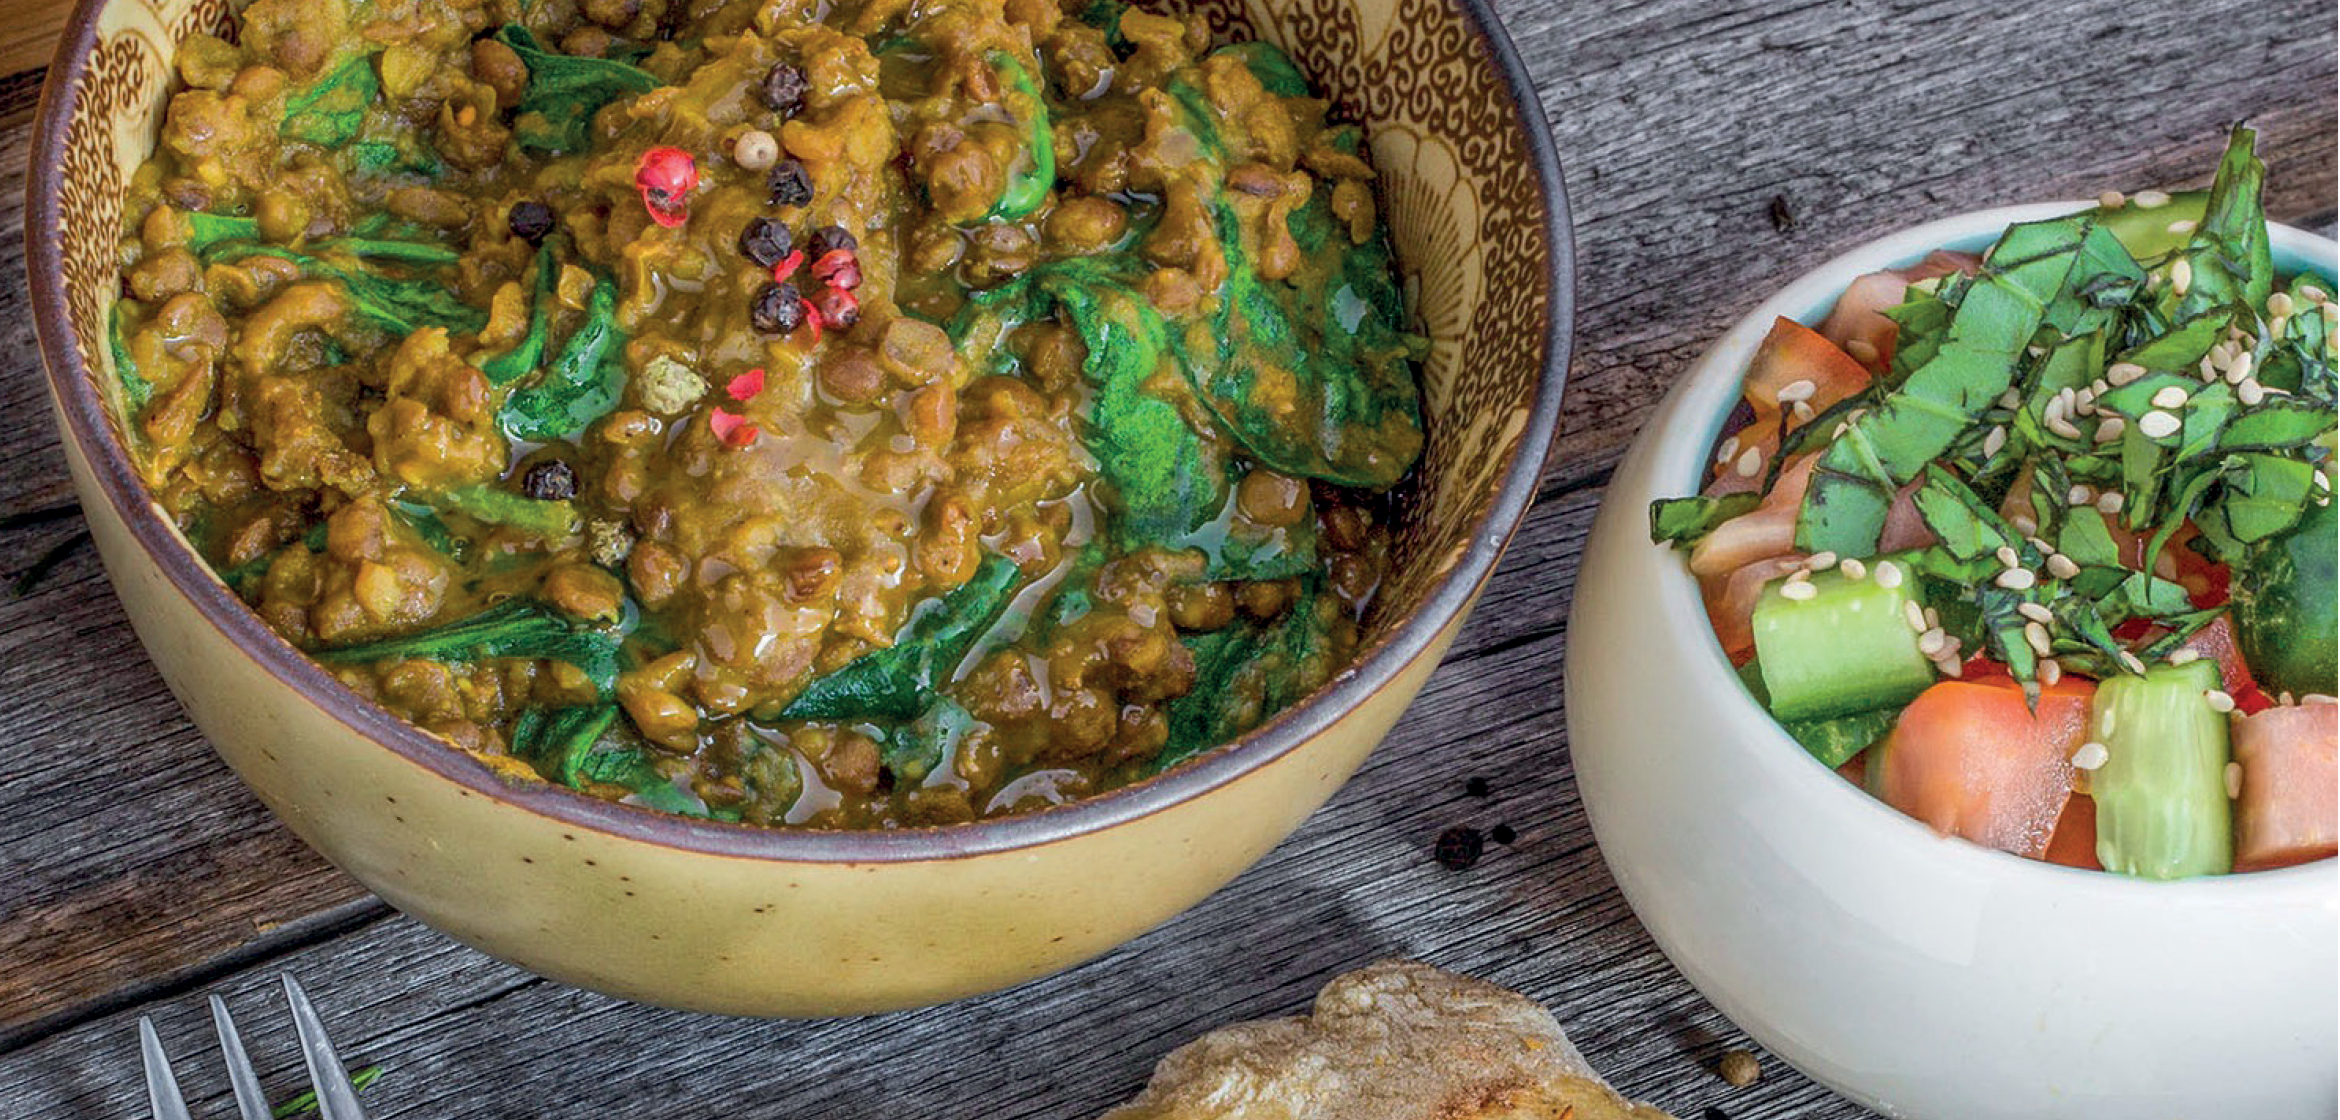 SPINACH DHAL WITH INDIAN SALAD